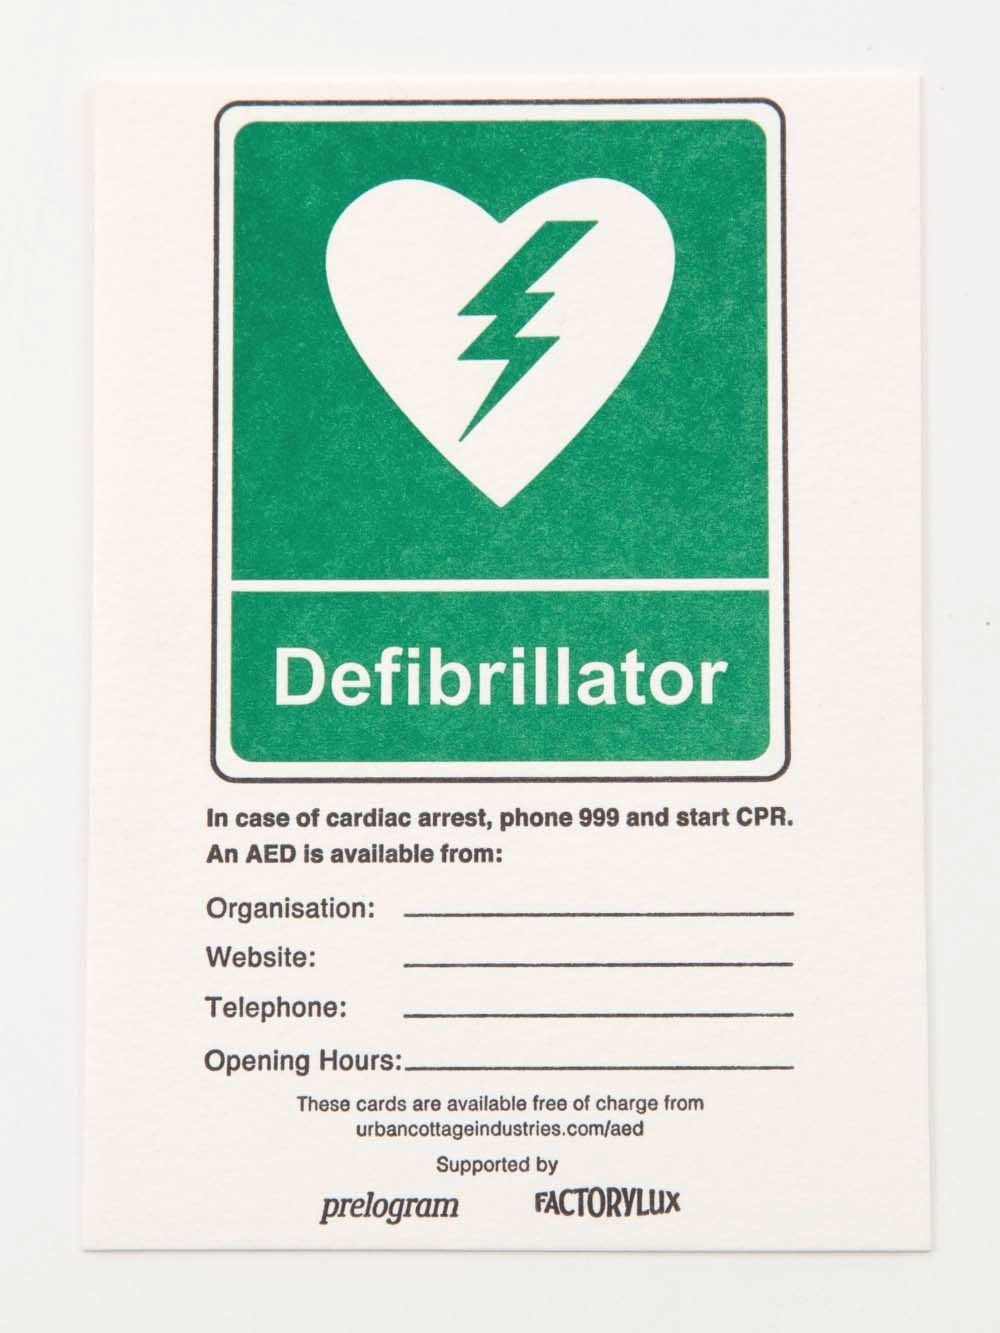 AED card to share your defibrillator